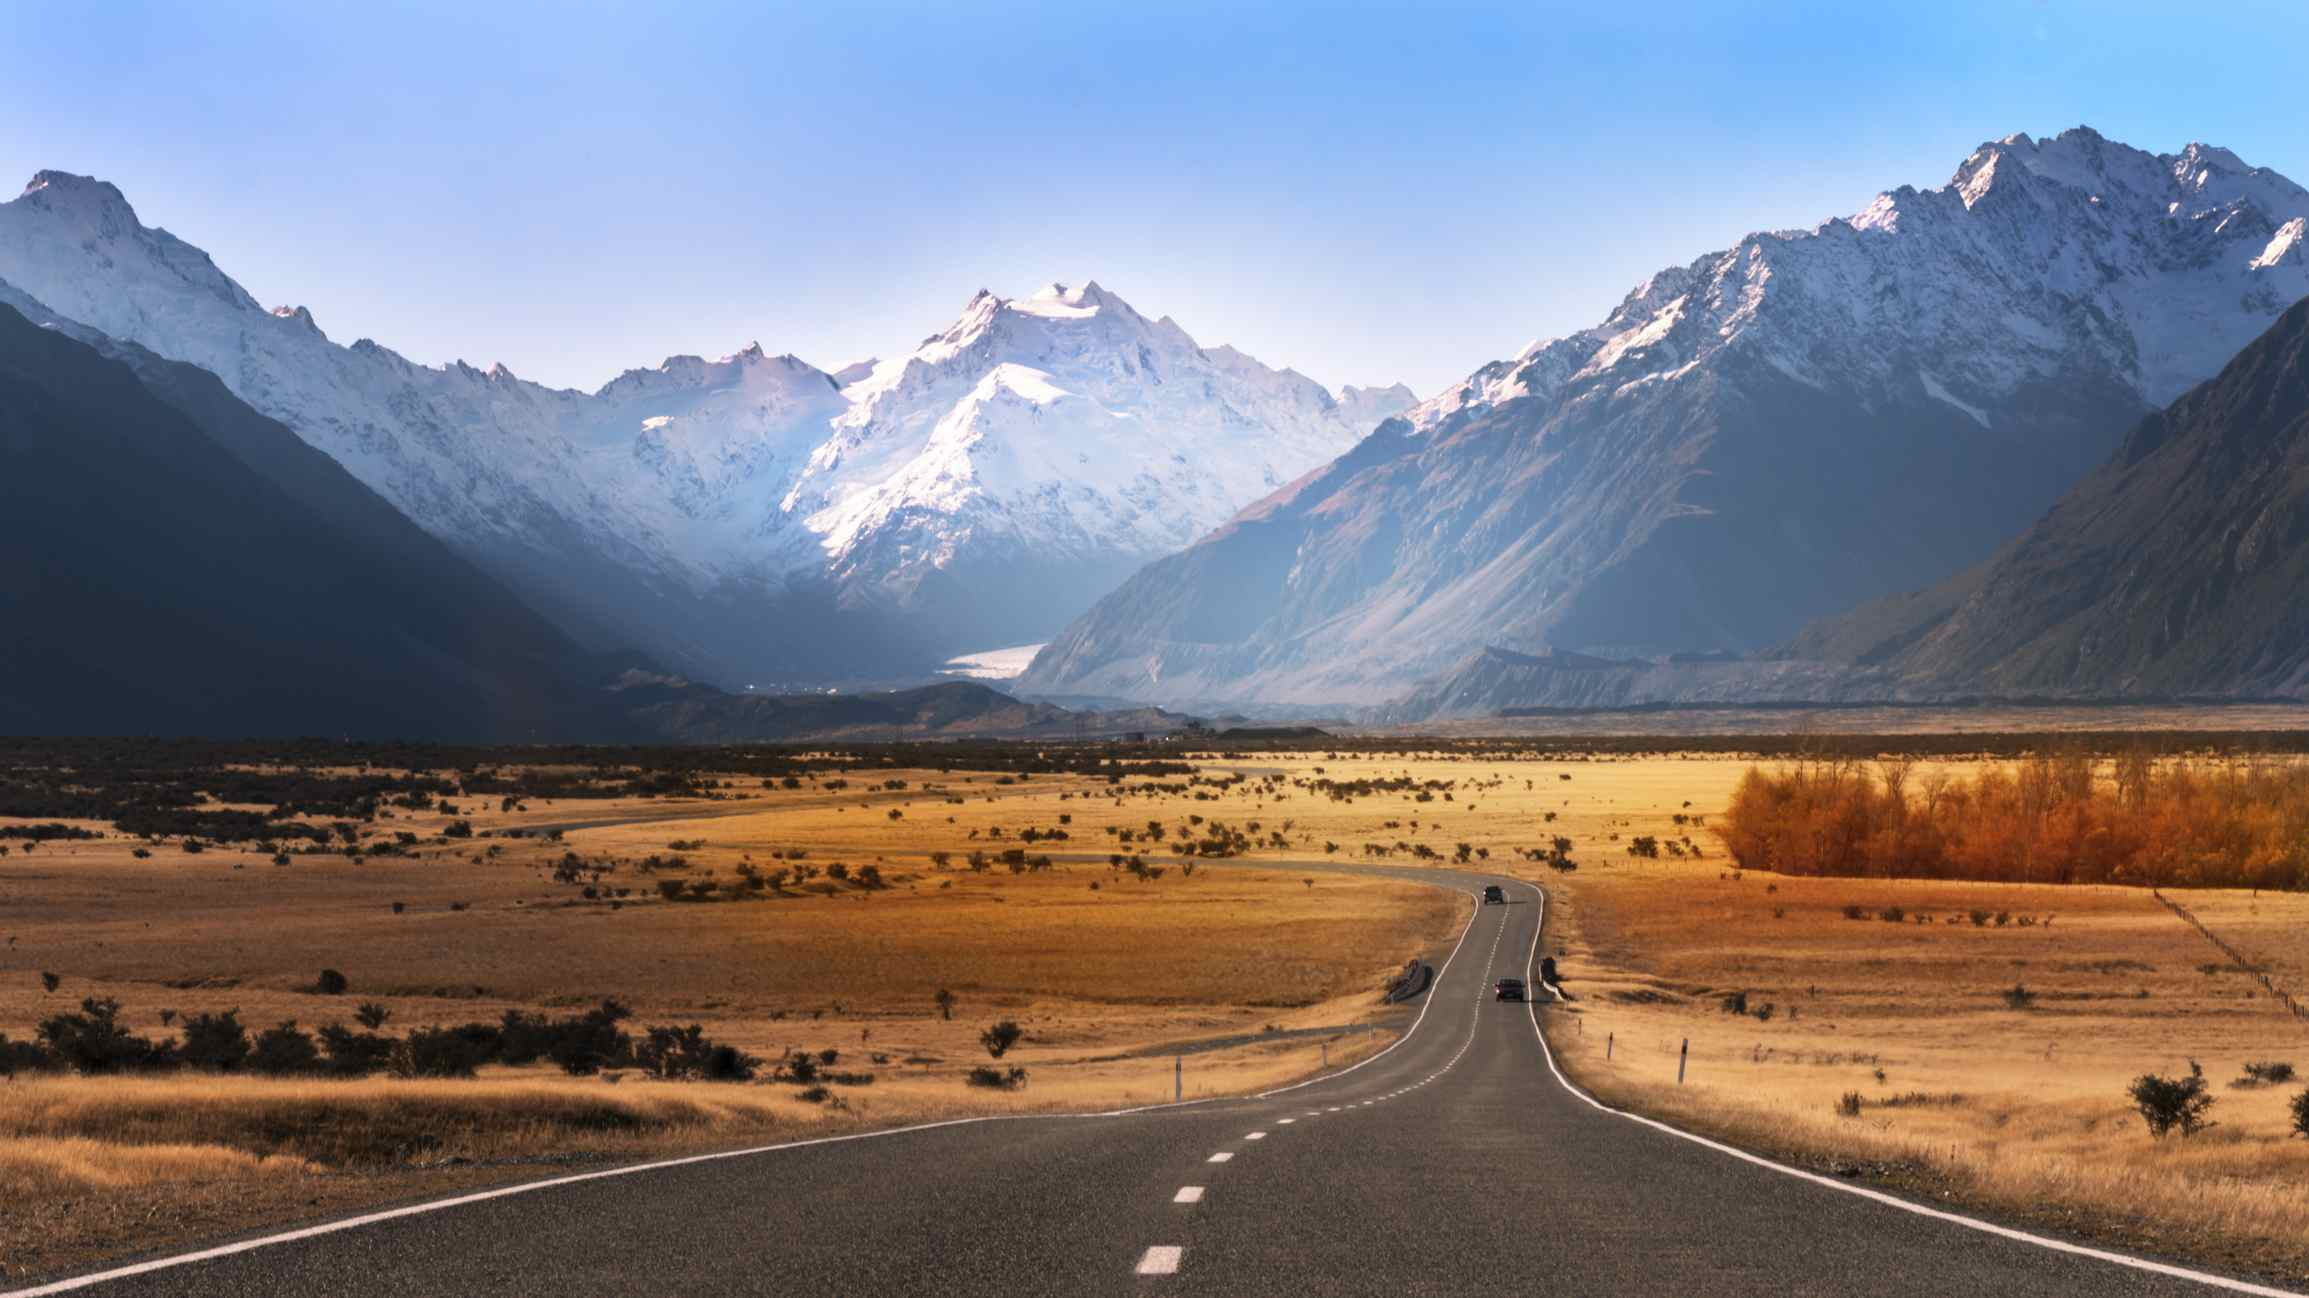 The road leading to Mount Cook visible in the end of the road